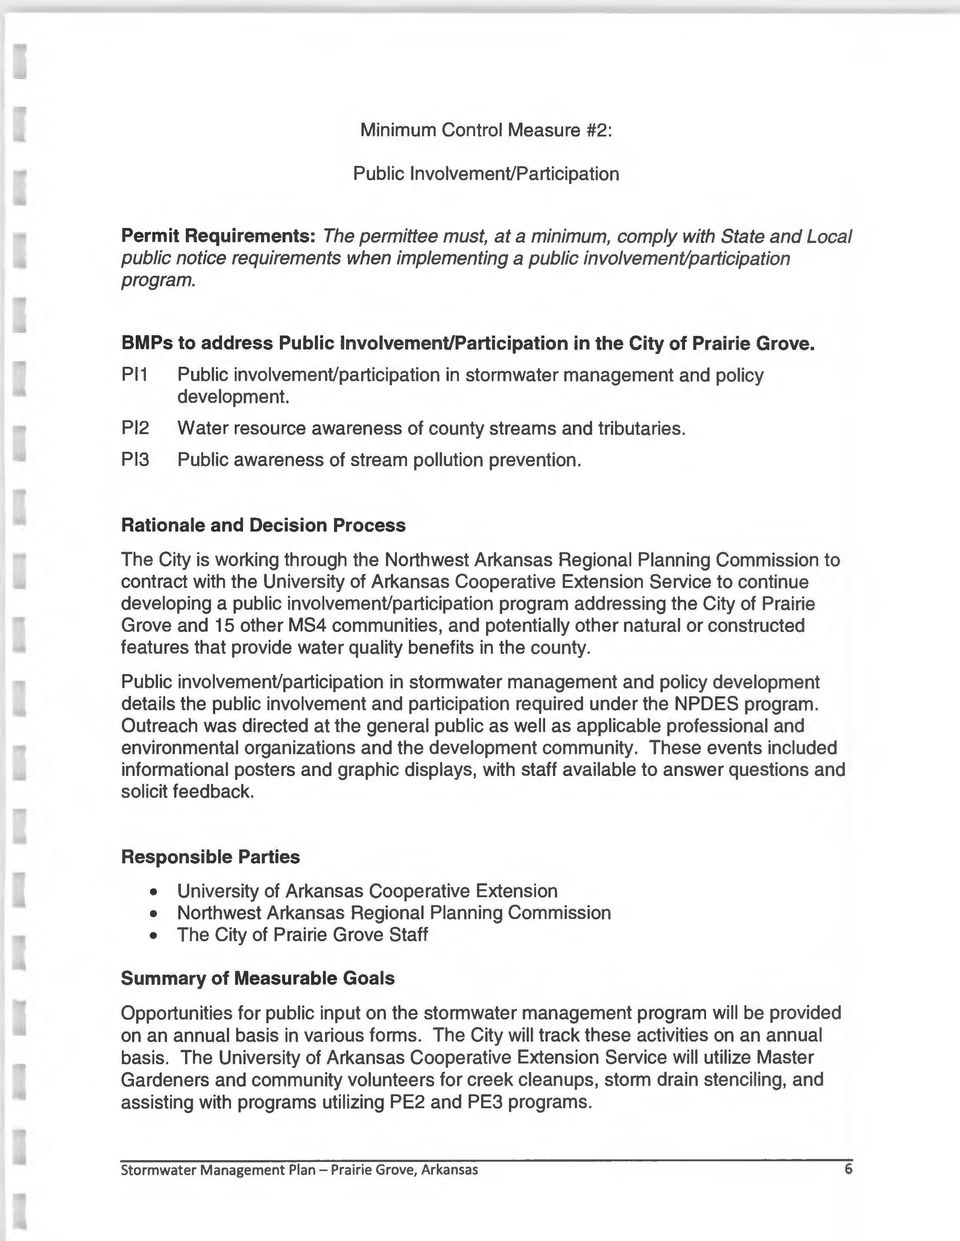 Pl1 Pl2 Pl3 Public involvement/participation in stormwater management and policy development. Water resource awareness of county streams and tributaries.